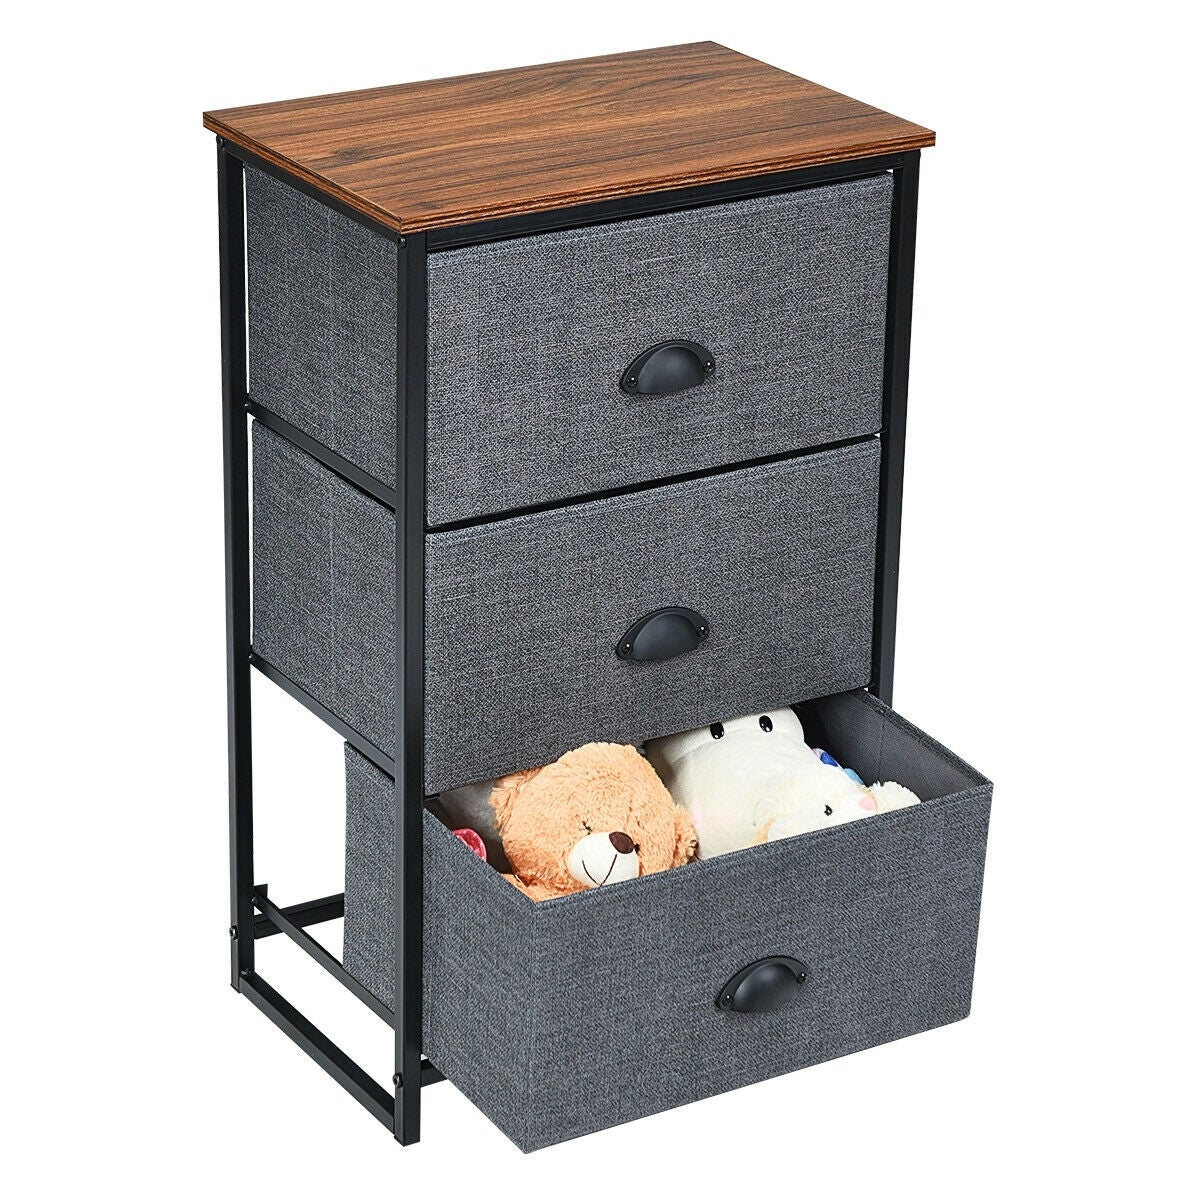 Bedside Table Oak Wooden Storage Unit with 3 Drawers Storage Cabinet with Metal Handles Storage Cupboard for Bathroom Kitchen Bedroom Office Livingroom,40x35x62cm